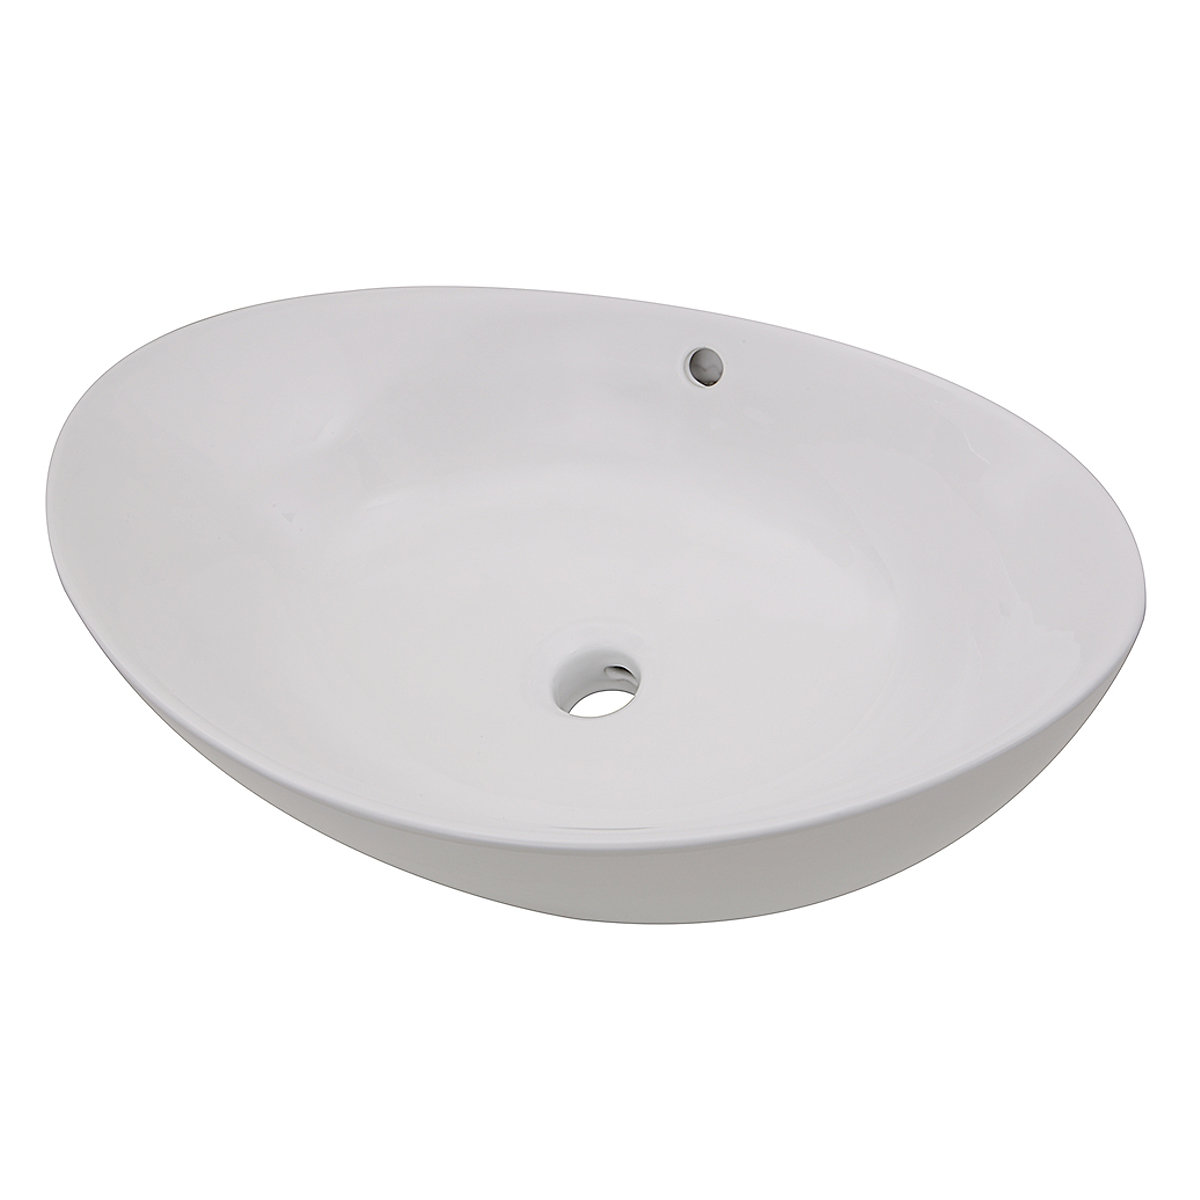 23 Inch Oblong White Ceramic Vessel Sink With Overflow